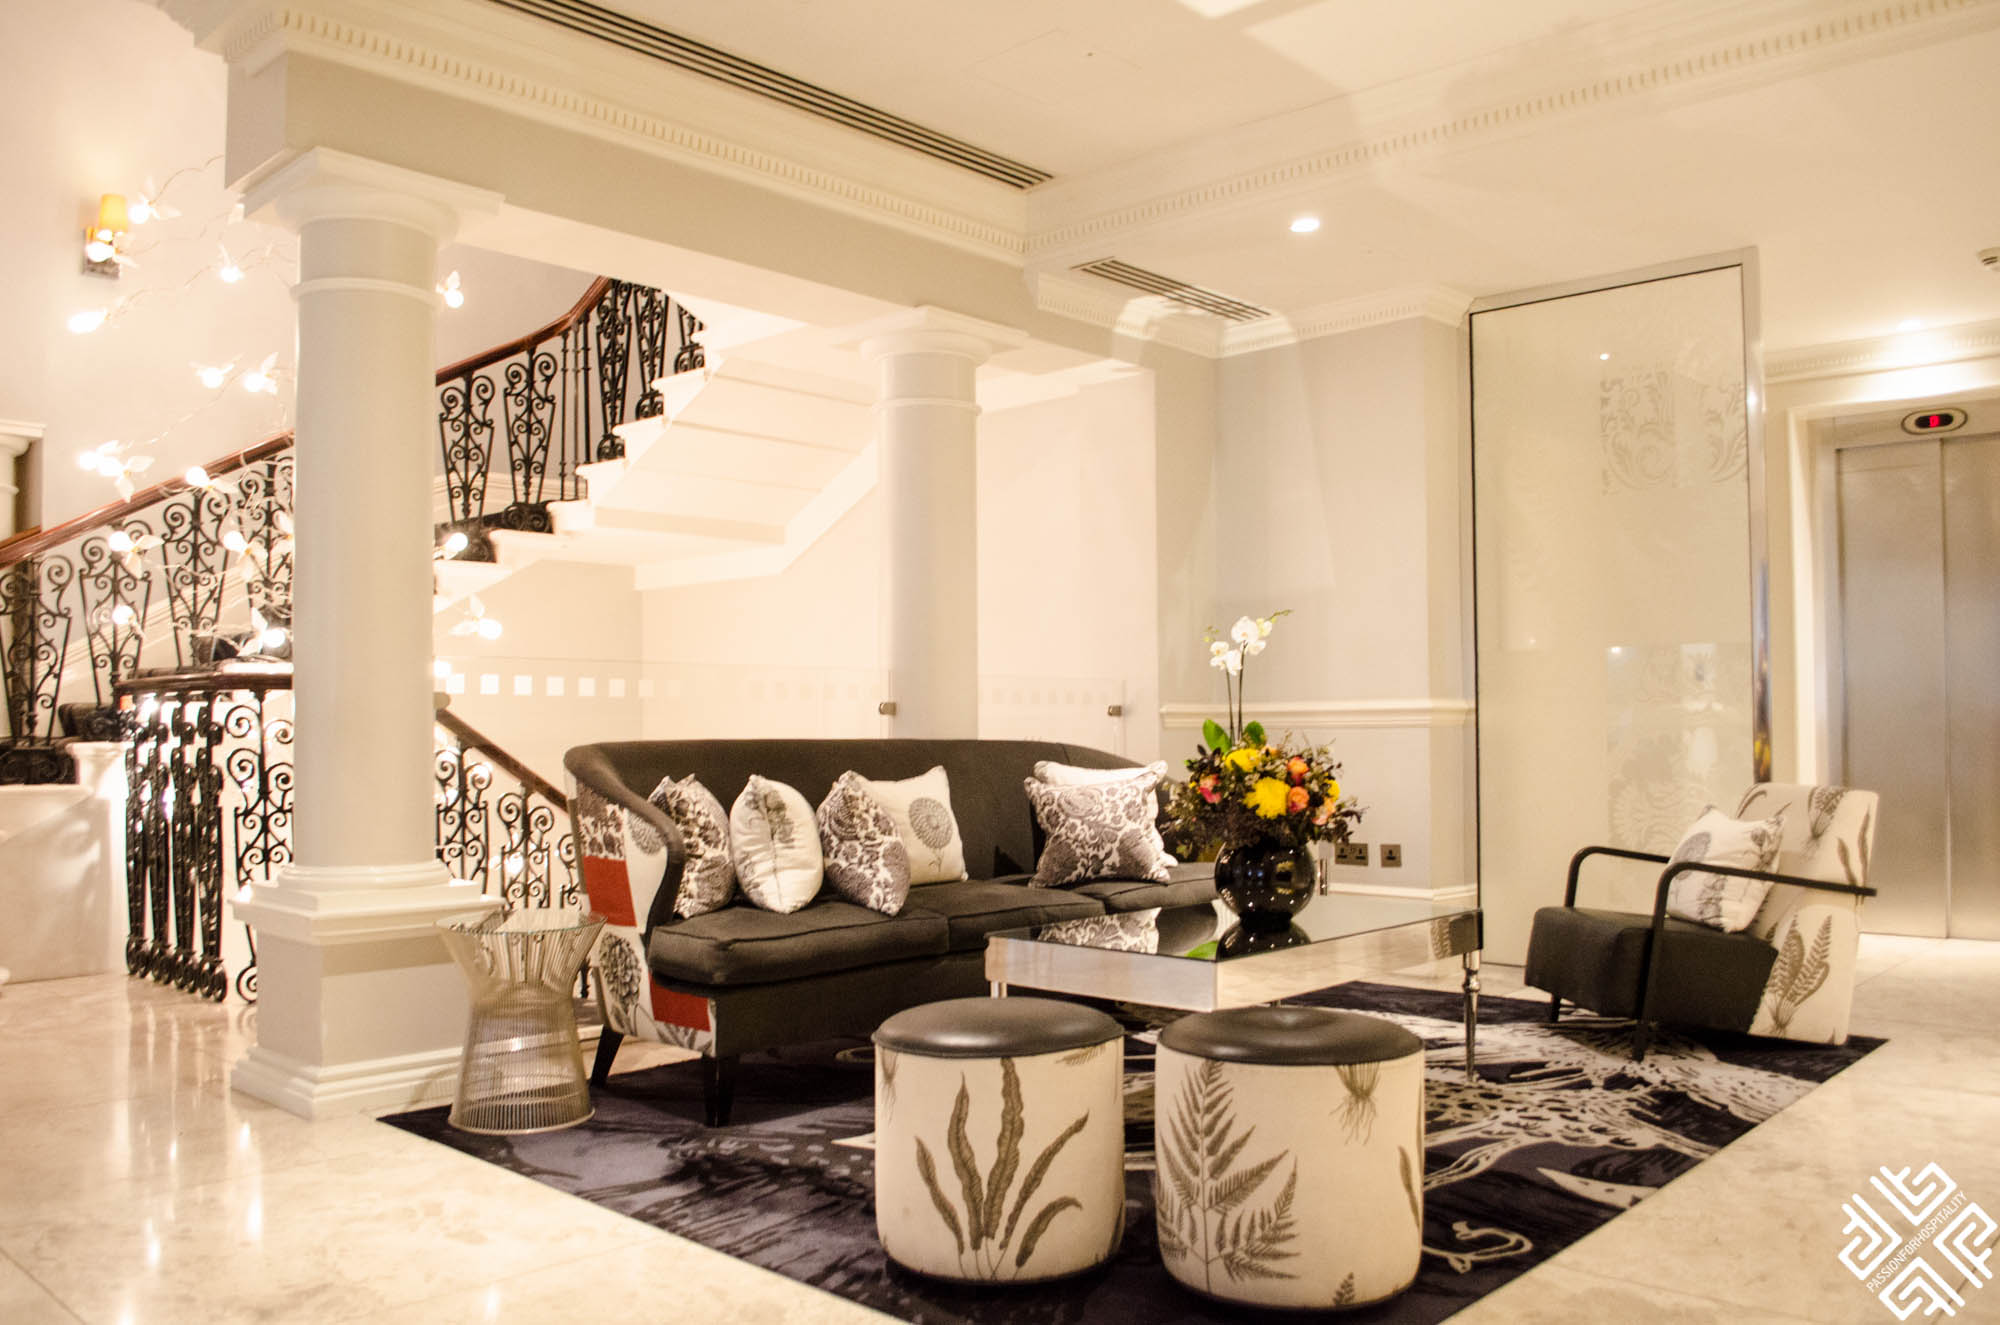 The ampersand hotel an exquisite boutique luxury hotel in Ampersand london